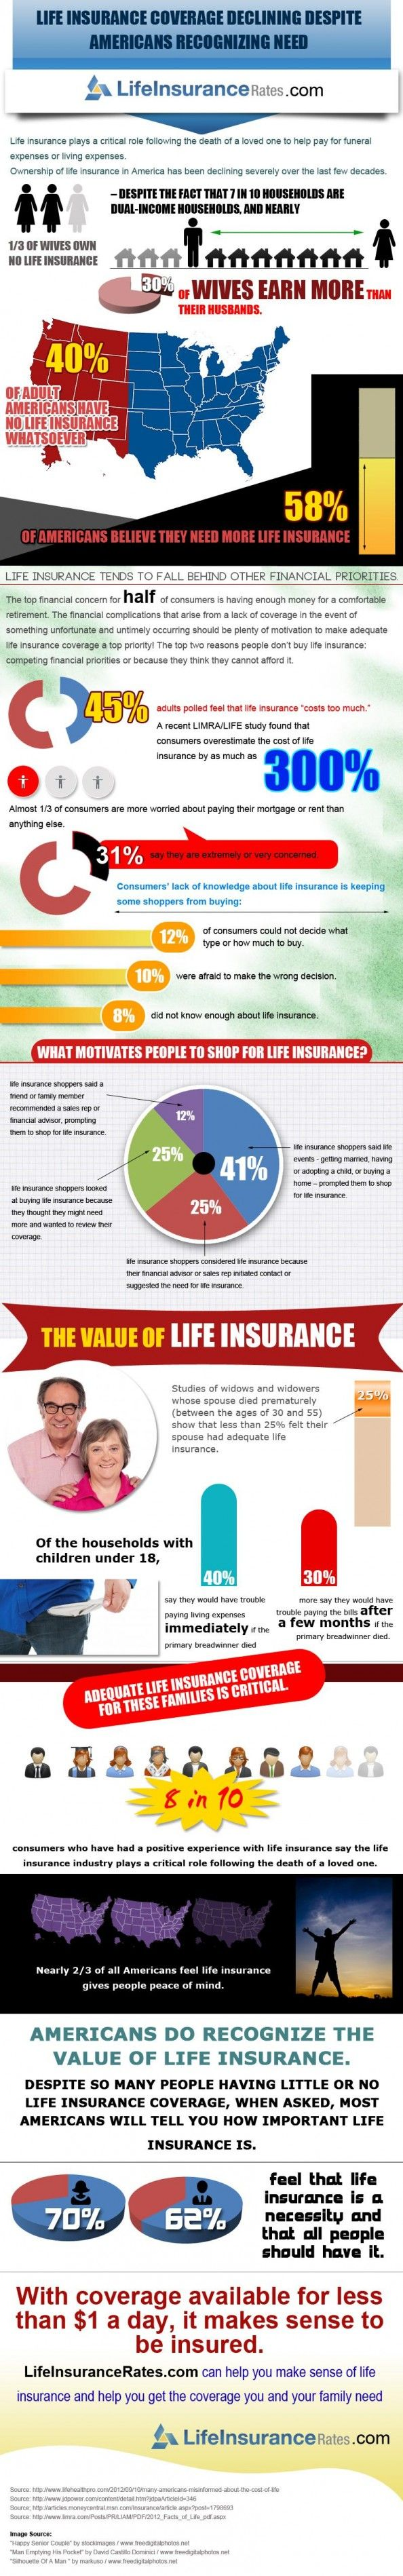 Life Insurance Coverage Declining Despite Americans Recognizing